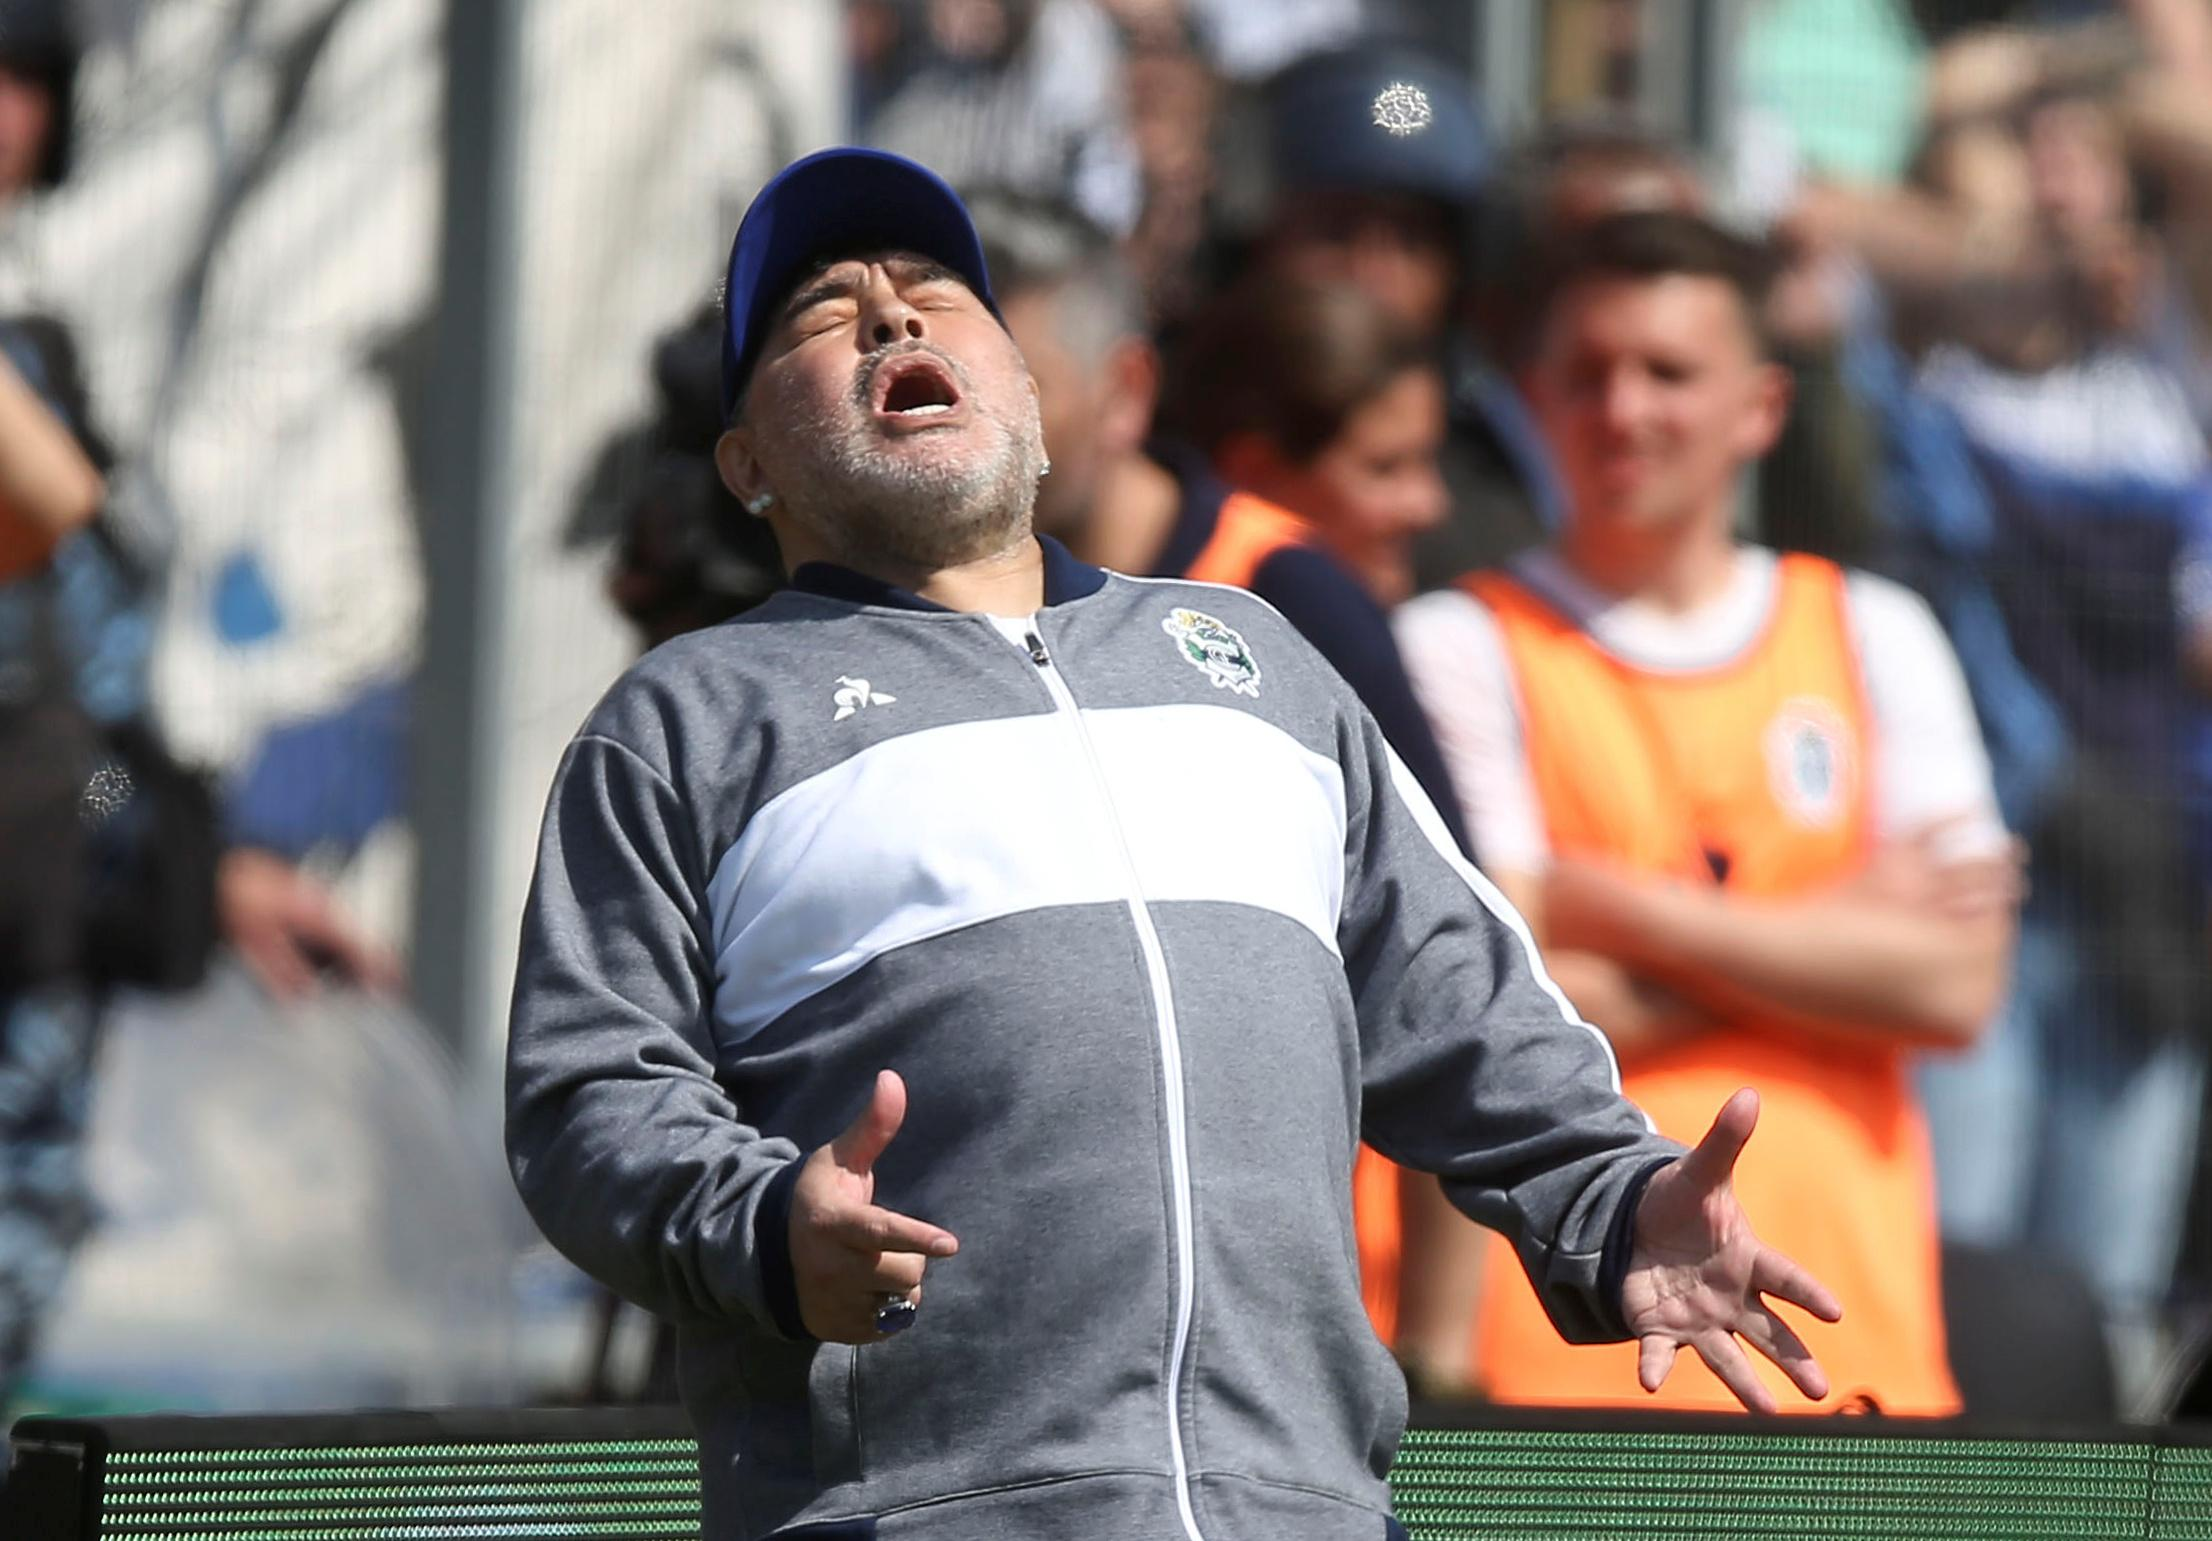 Maradona's club suffer 2-1 defeat on new coaching debut